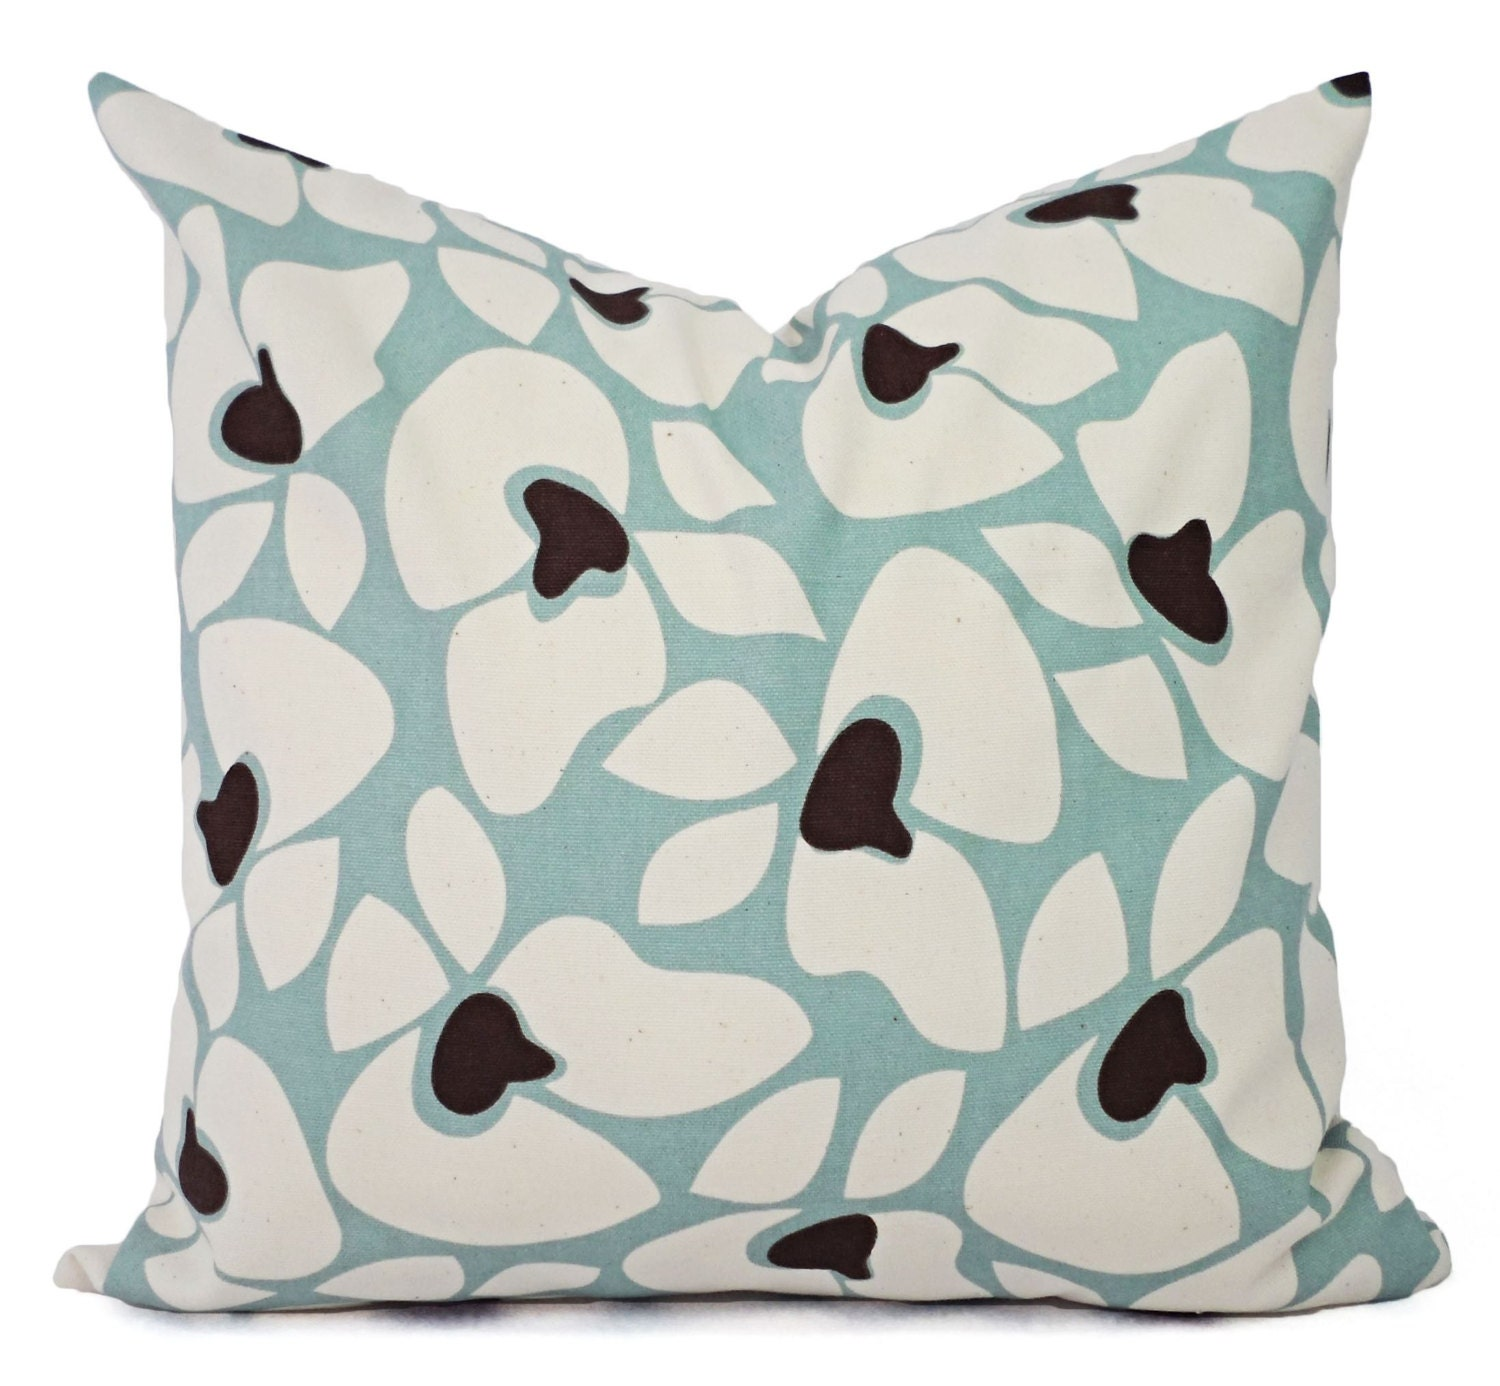 Spa Blue Pillow Covers 2 Floral Decorative Pillow Covers